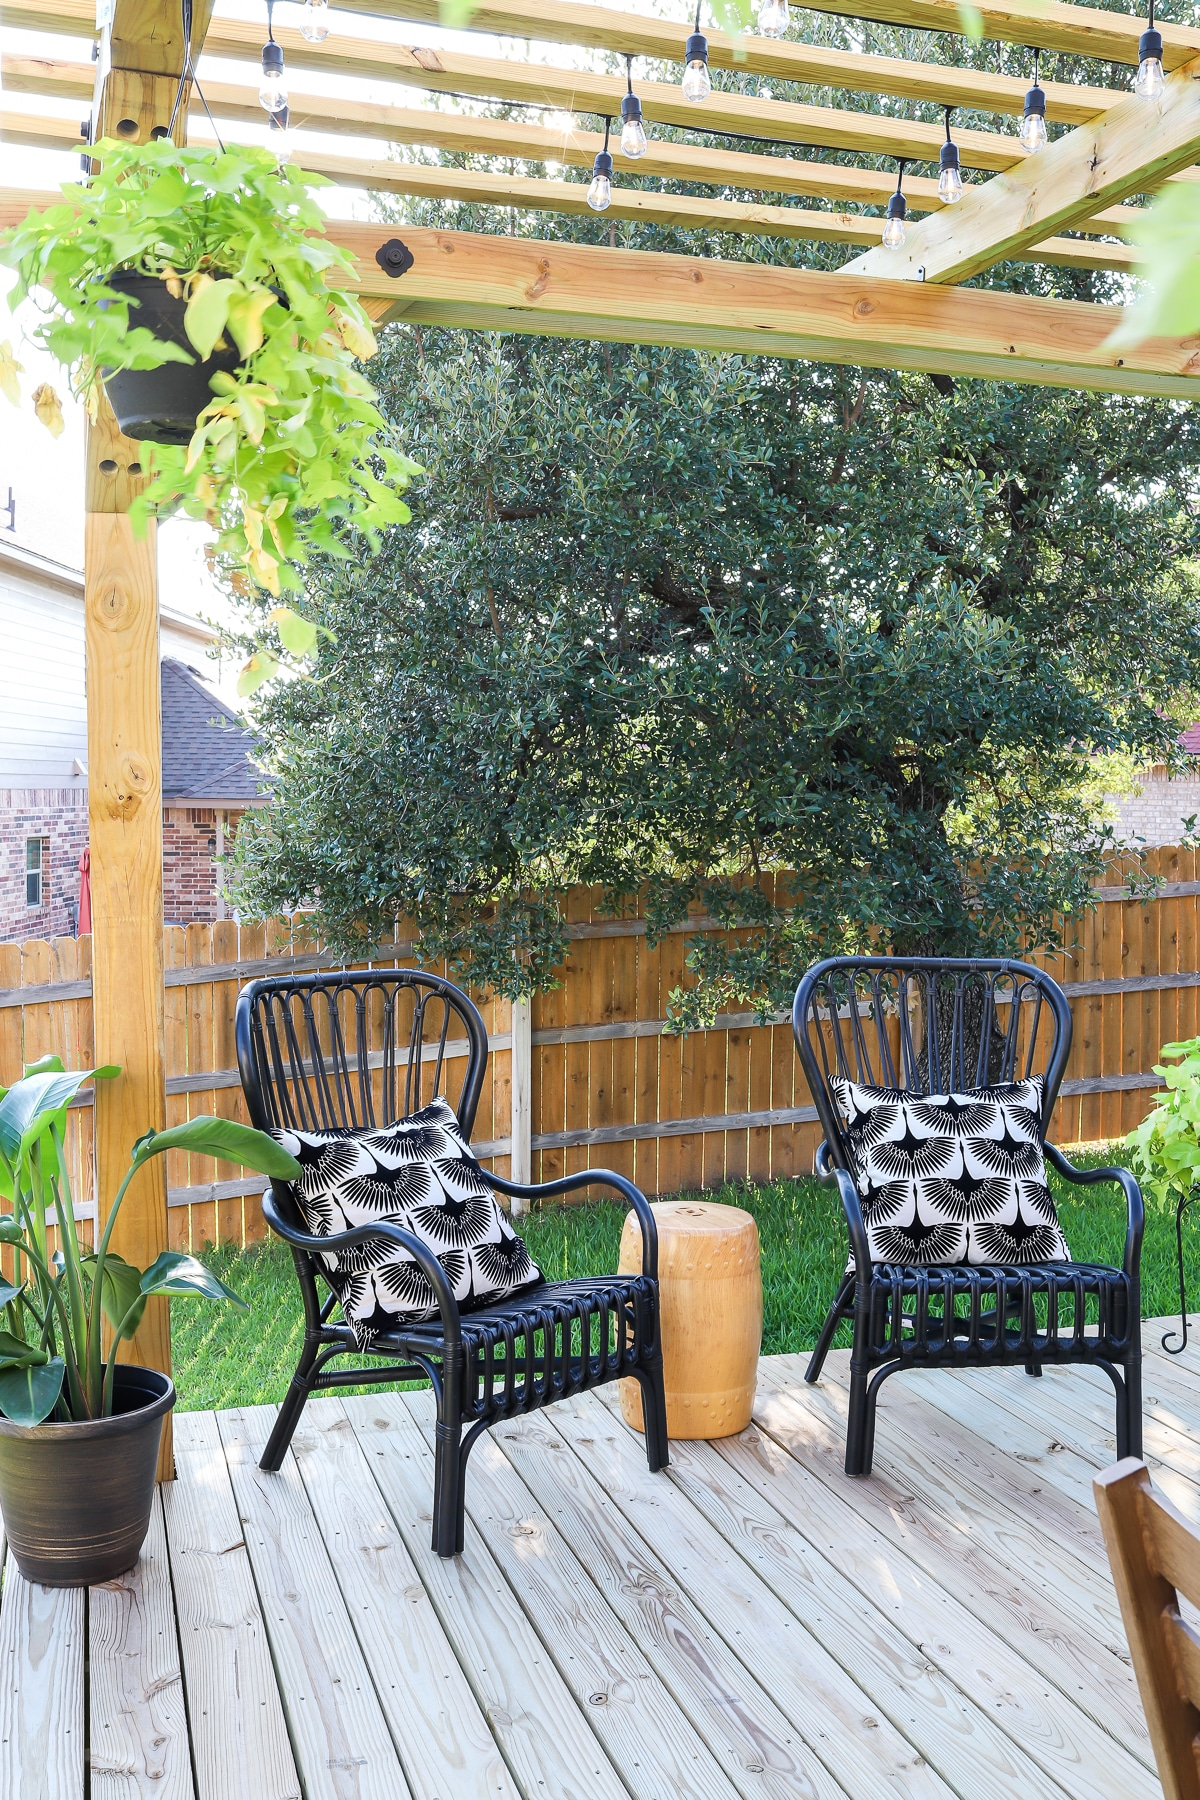 Do It Yourself Home Design: How To Build A DIY Pergola With Simpson Strong-Tie Outdoor